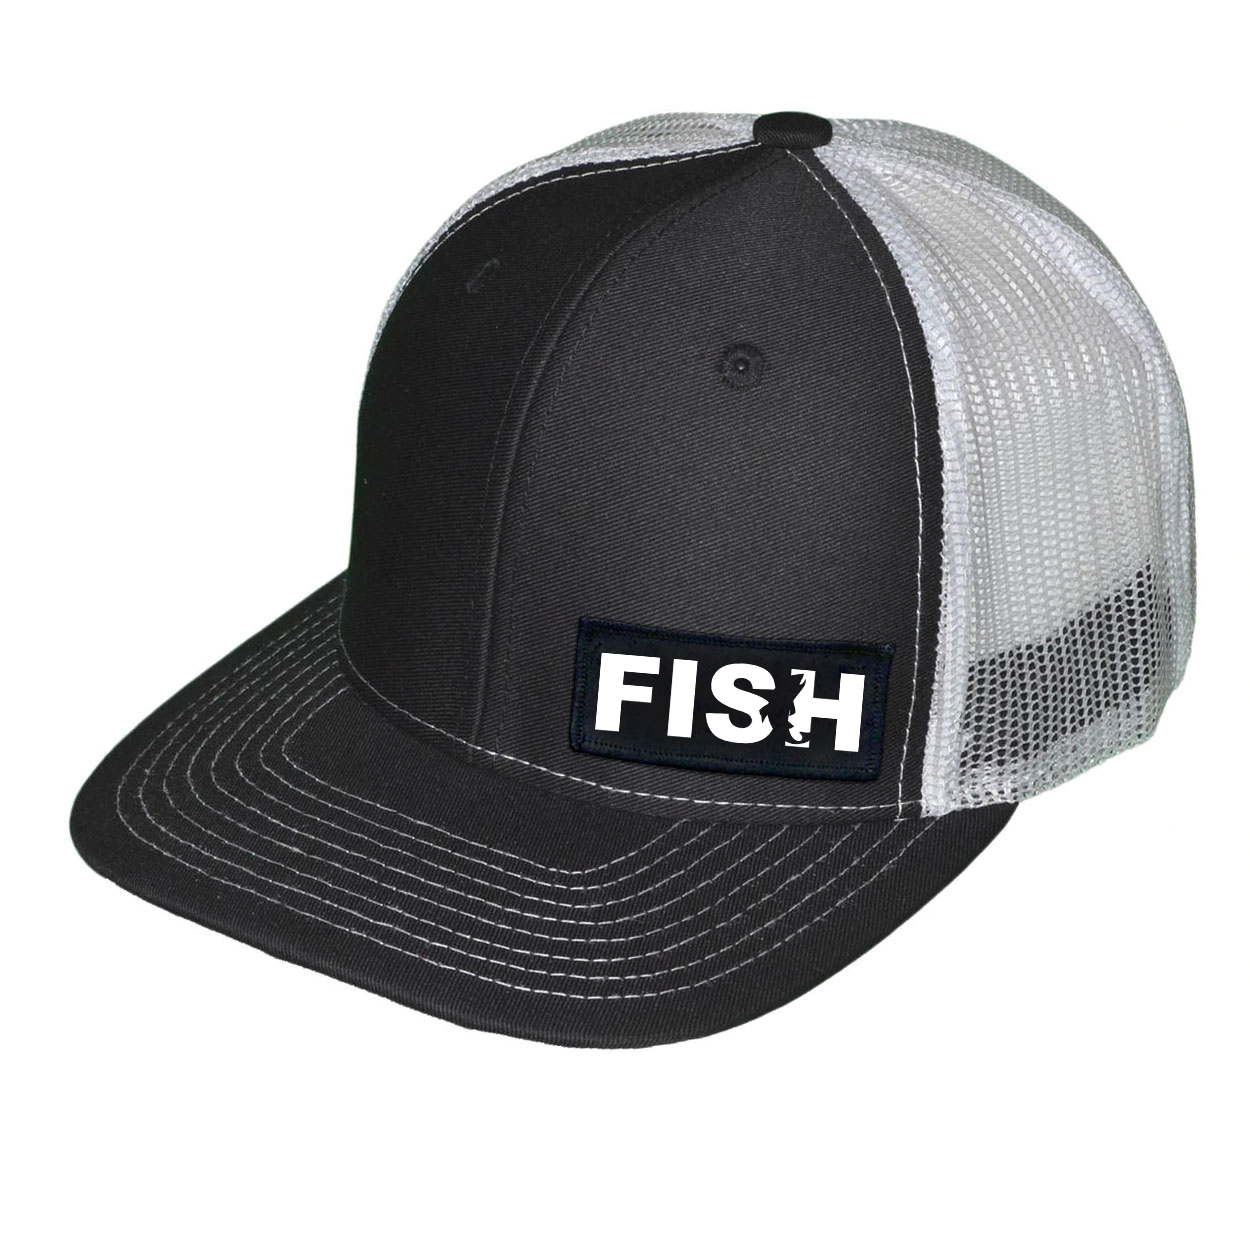 Fish Catch Logo Night Out Woven Patch Snapback Trucker Hat Black/White (White Logo)